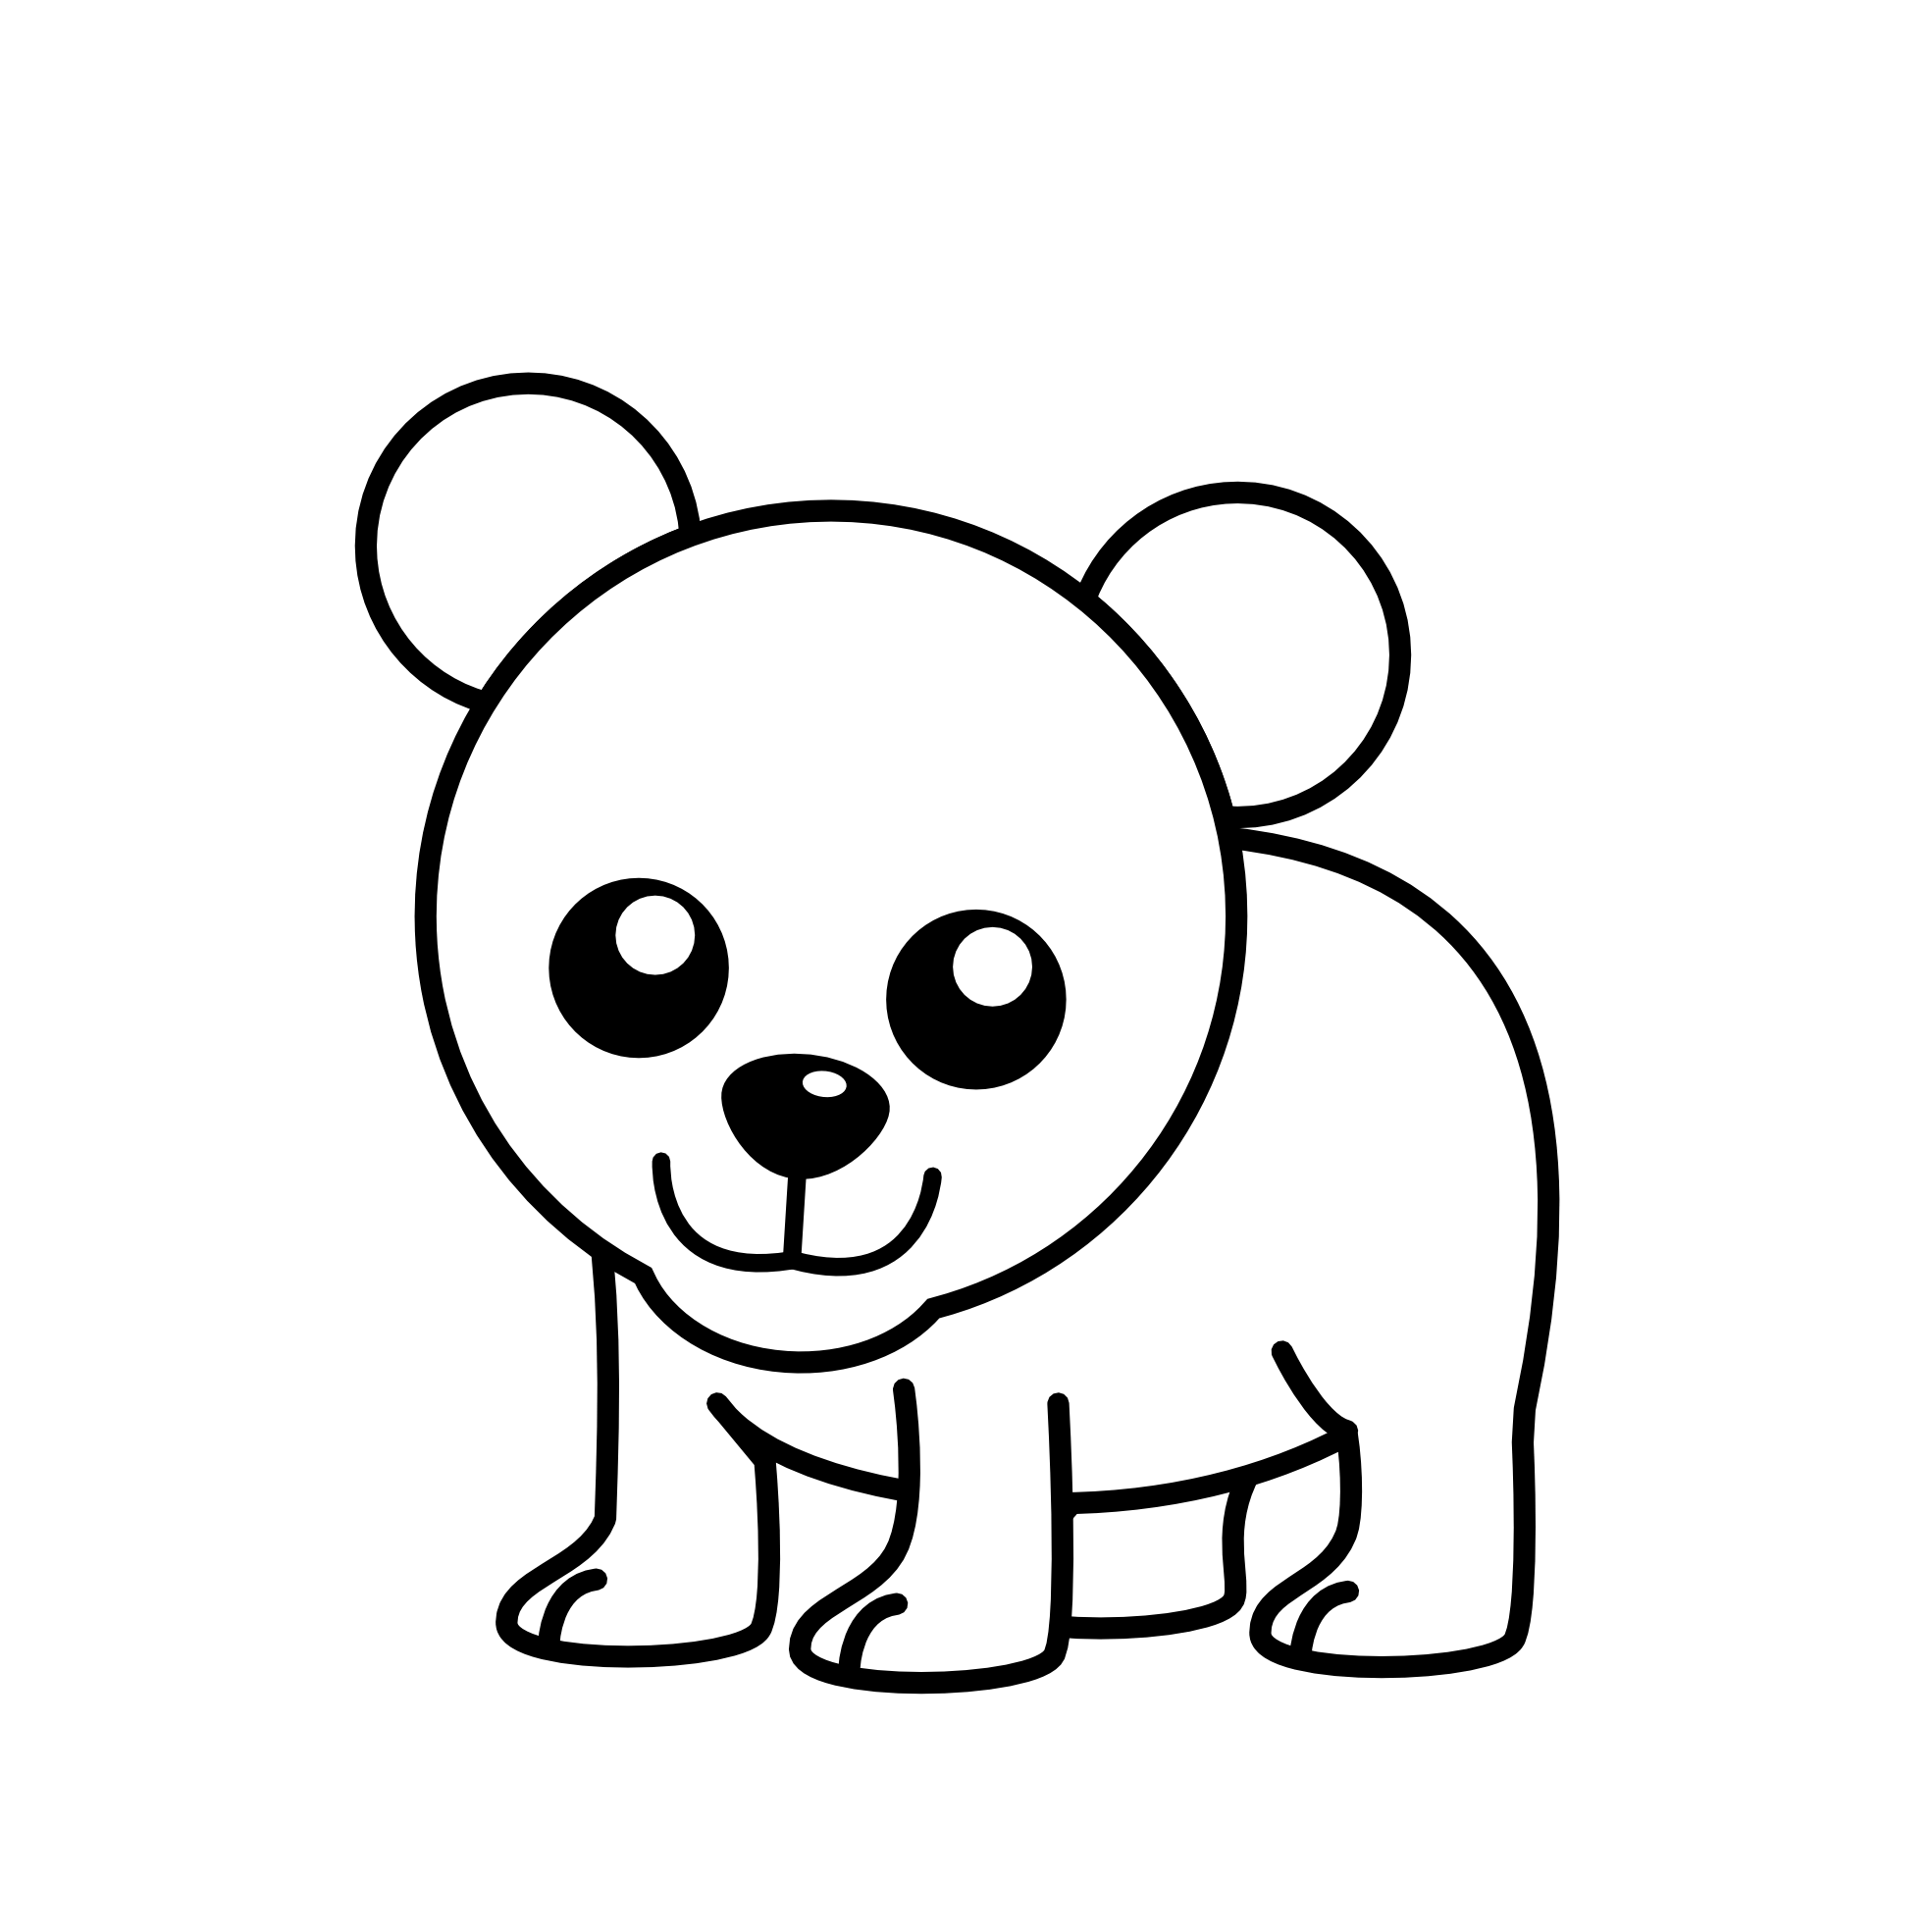 Open Book Clipart Black And White Clipart Panda